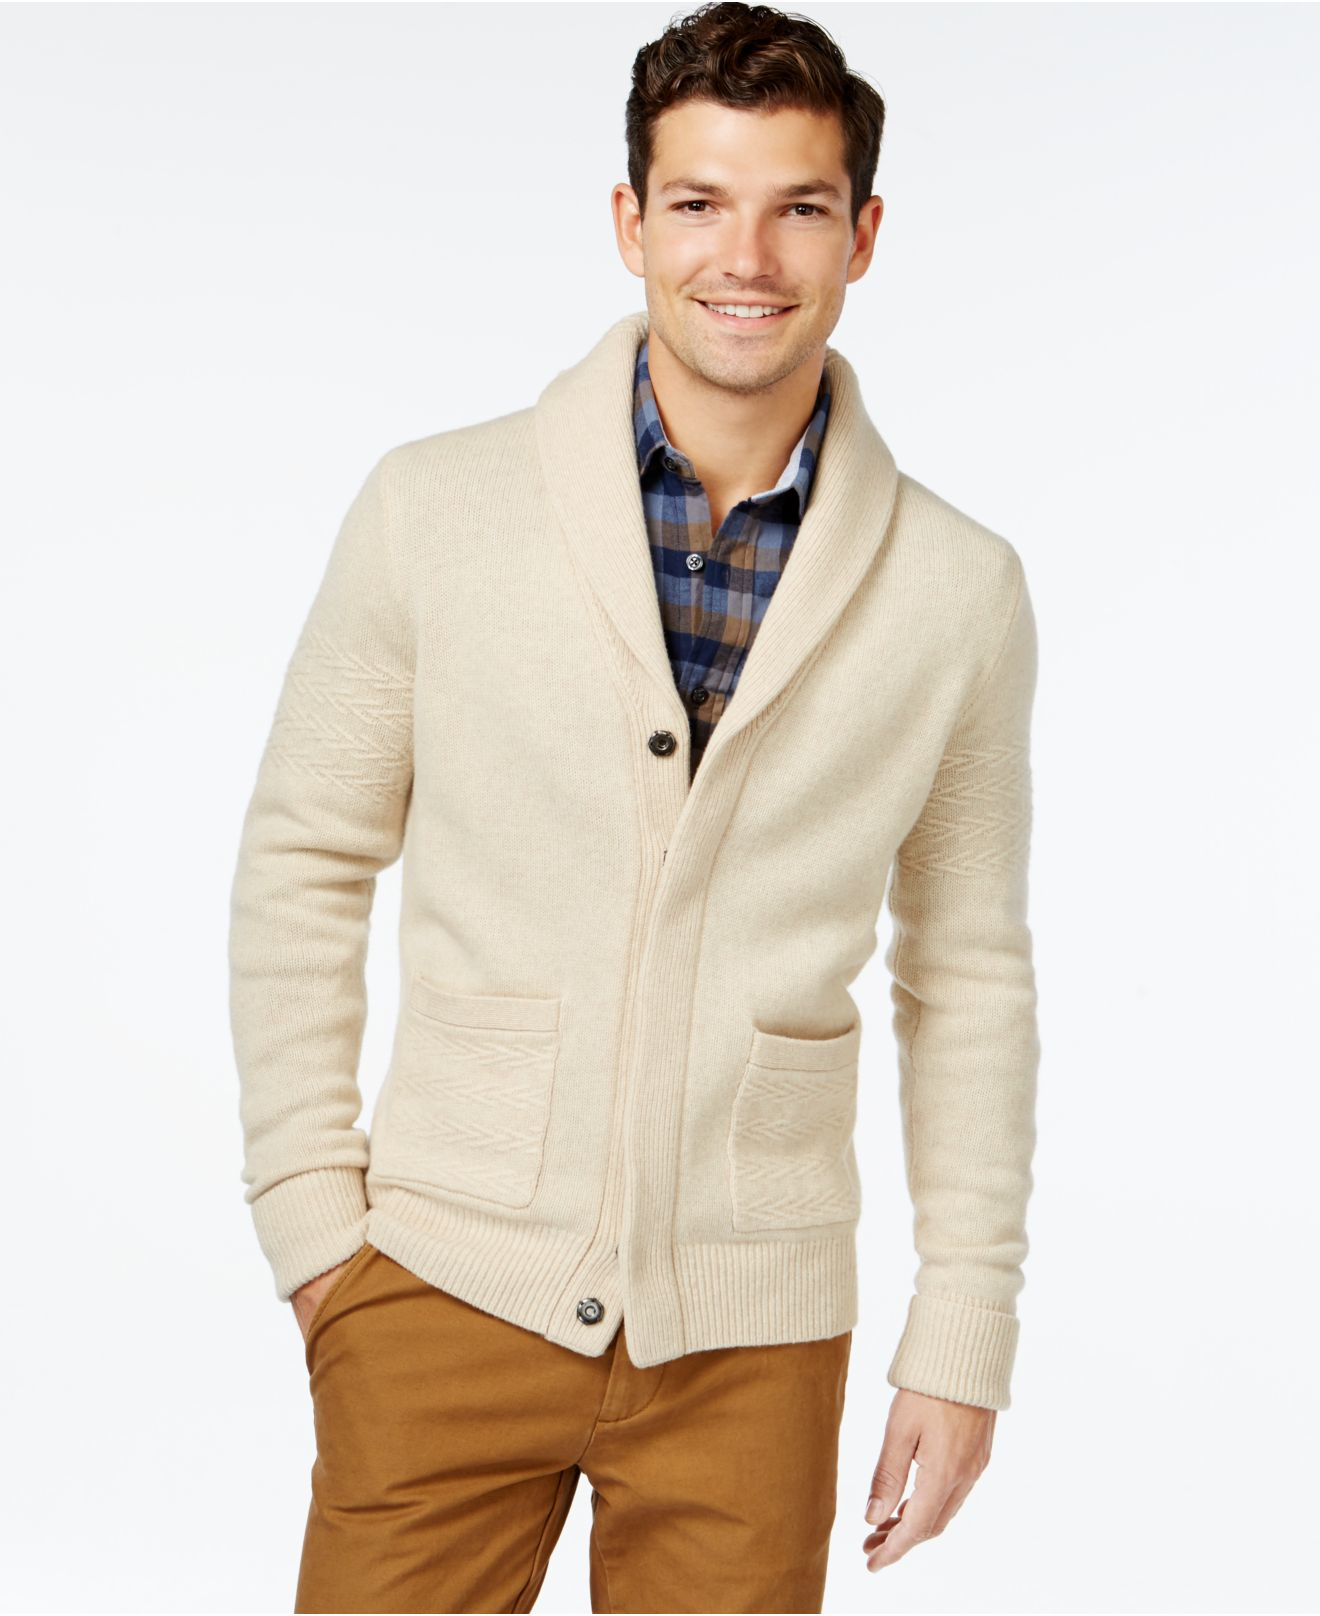 tommy hilfiger natural that way shawl collar cardigan for men lyst. Black Bedroom Furniture Sets. Home Design Ideas